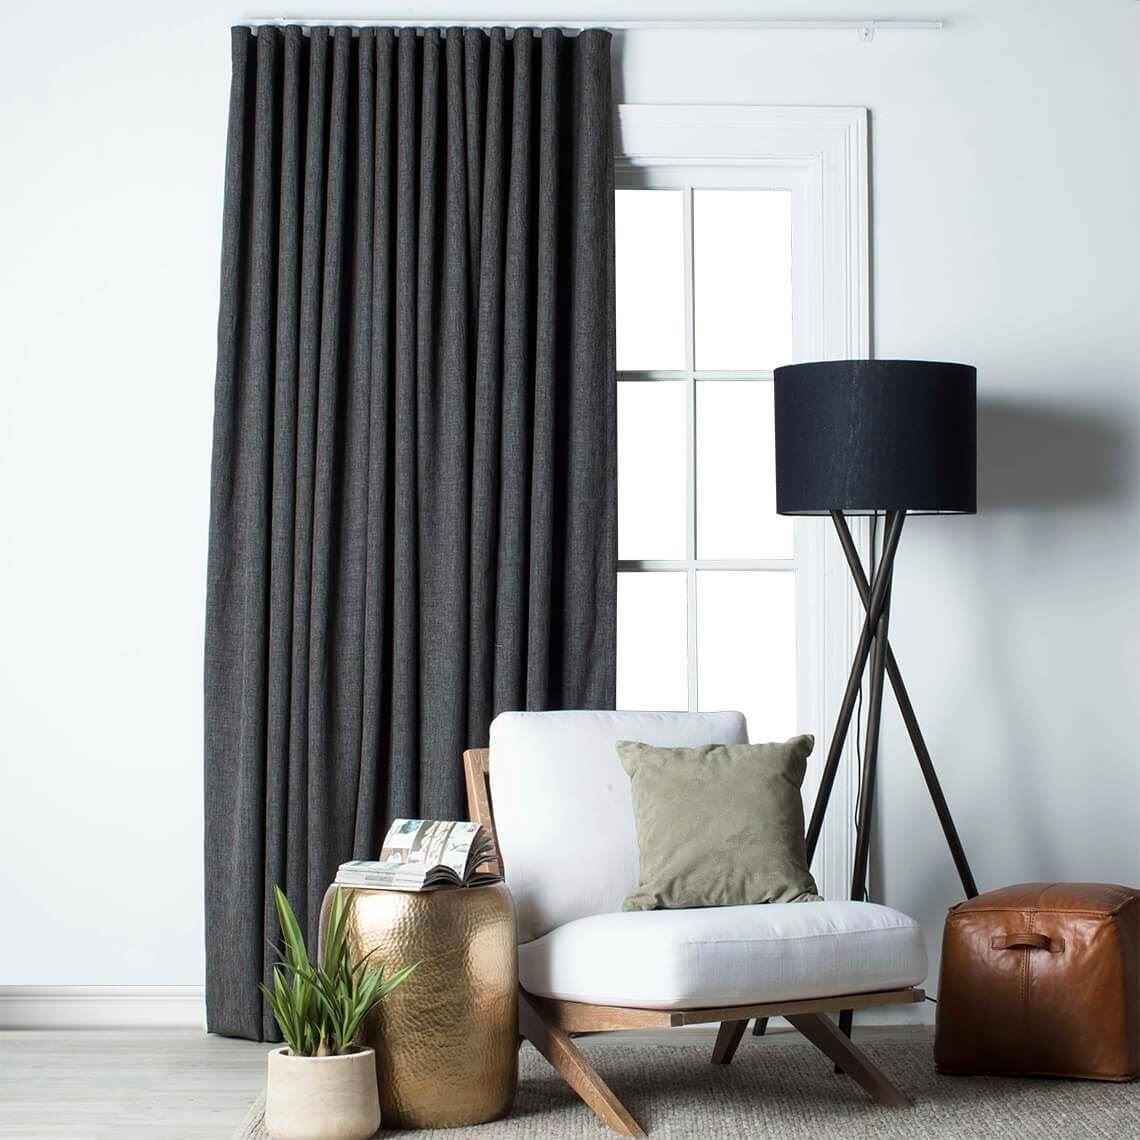 Lyndon Blockout S Fold Curtain Size W 360cm x D 1cm x H 280cm in Charcoal 100% Polyester Freedom by Freedom, a Curtains for sale on Style Sourcebook